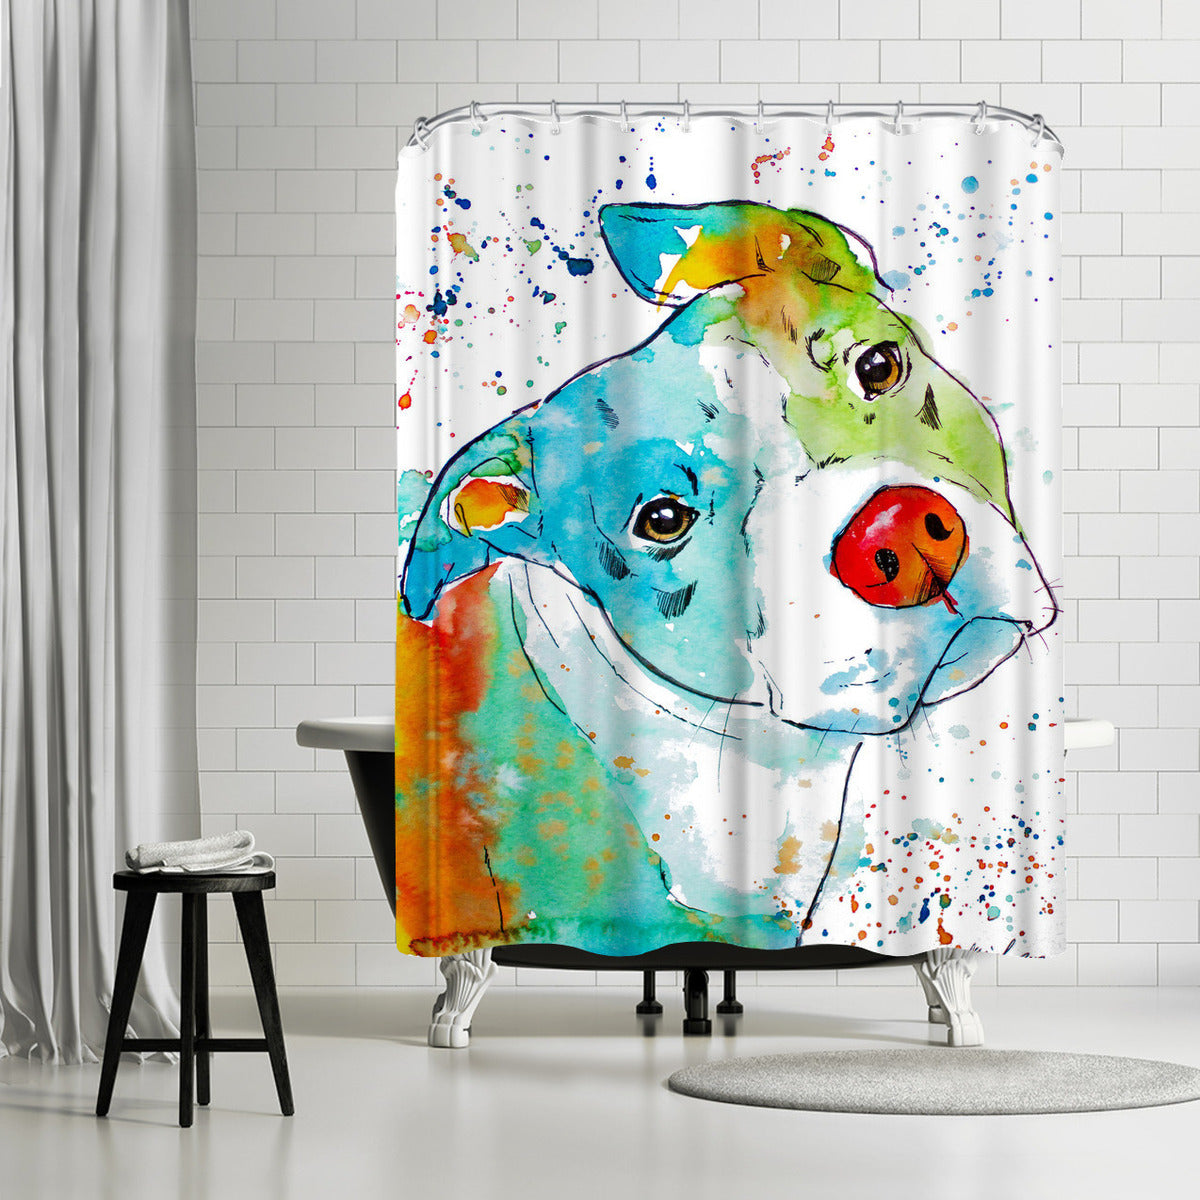 Color Pop Pup by Allison Gray Shower Curtain -  - Americanflat